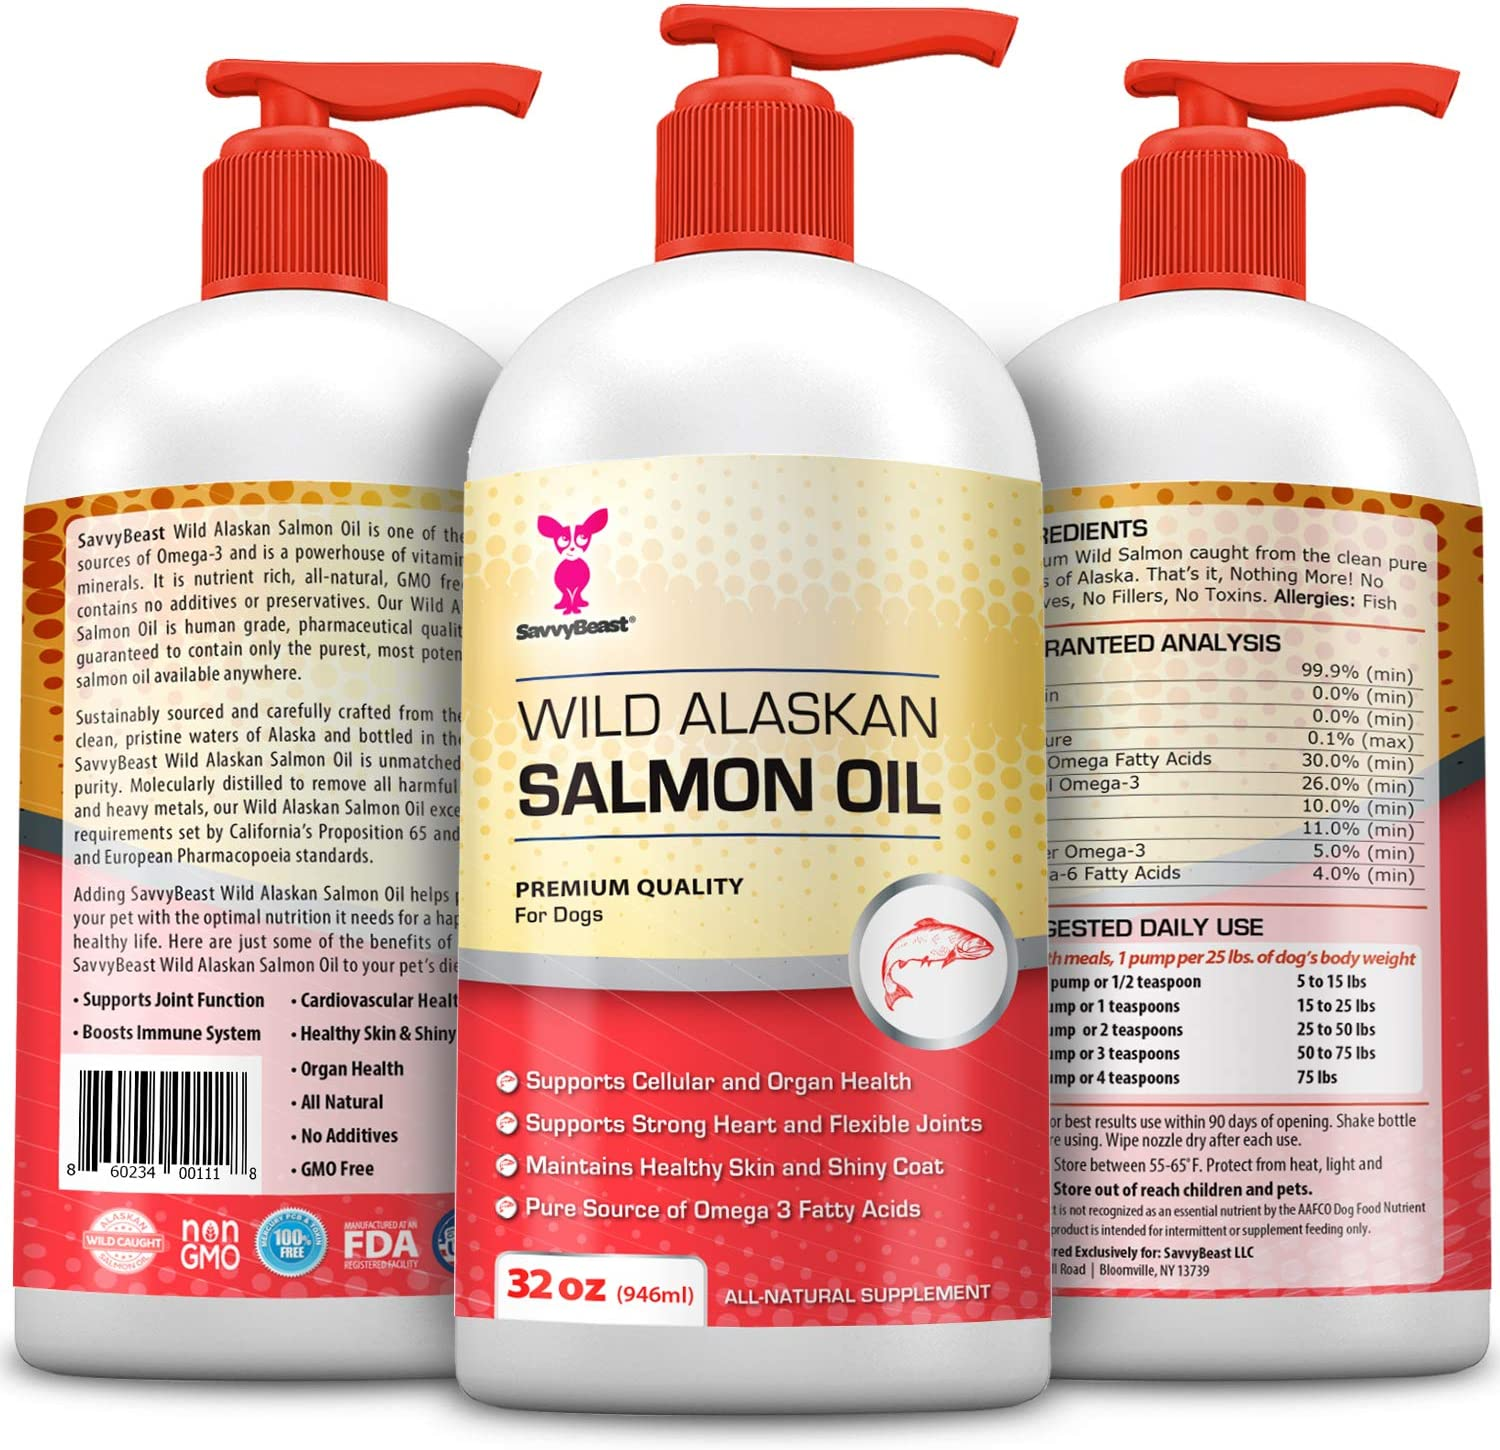 Wild Alaskan Salmon Oil for Dogs, Cats, Ferrets – 16 32oz Pure Unscented Liquid Omega 3 Fatty Acid Fish Oil for Dogs – EPA DHA supplement for Pets – Helps Joints, Dry Skin, Coat – Just Pump on Food